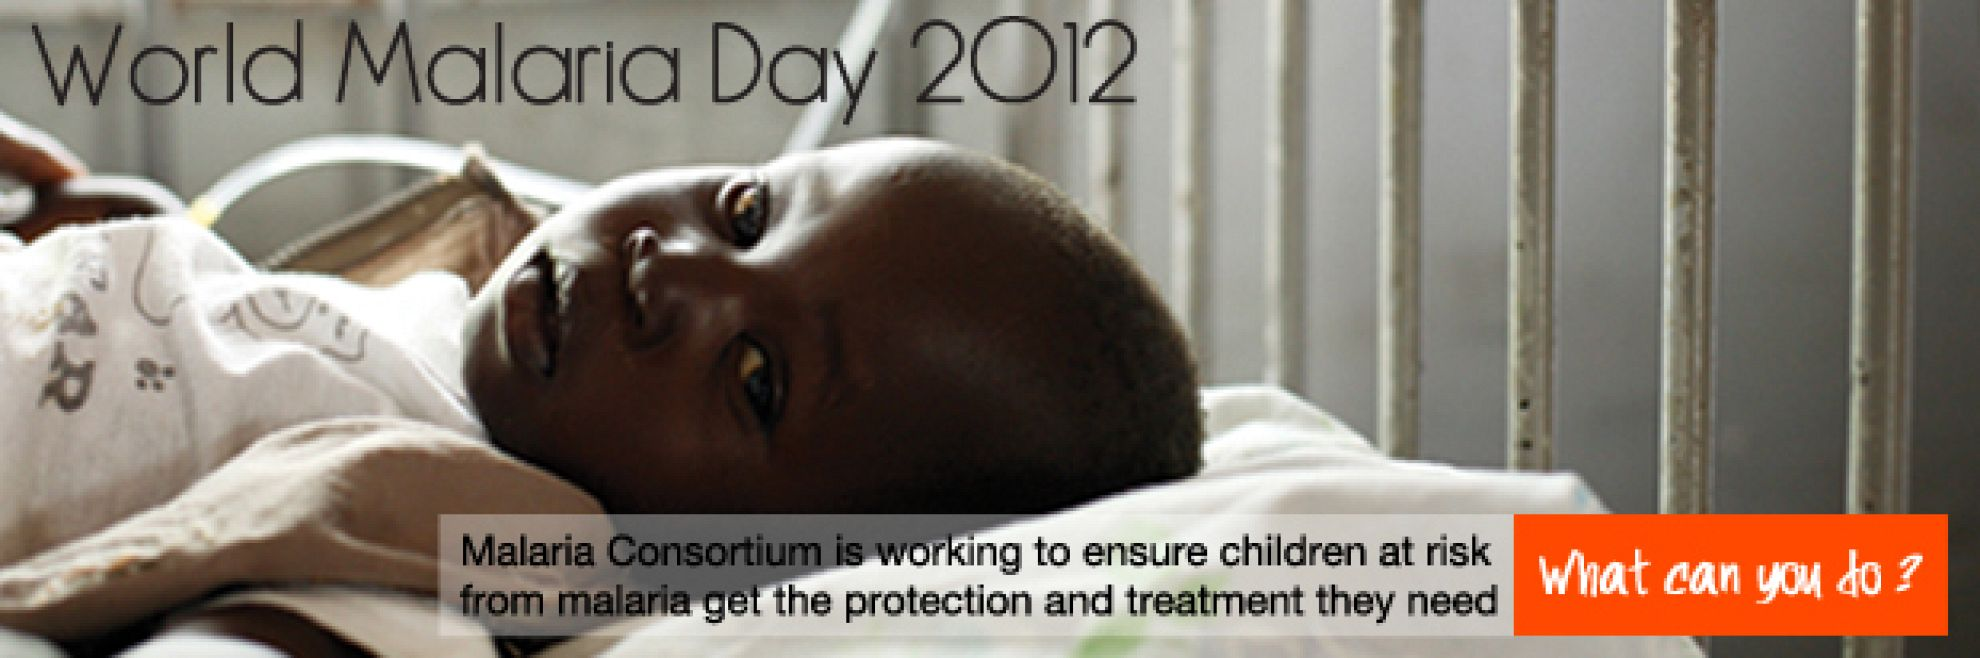 Latest News World malaria day 2012